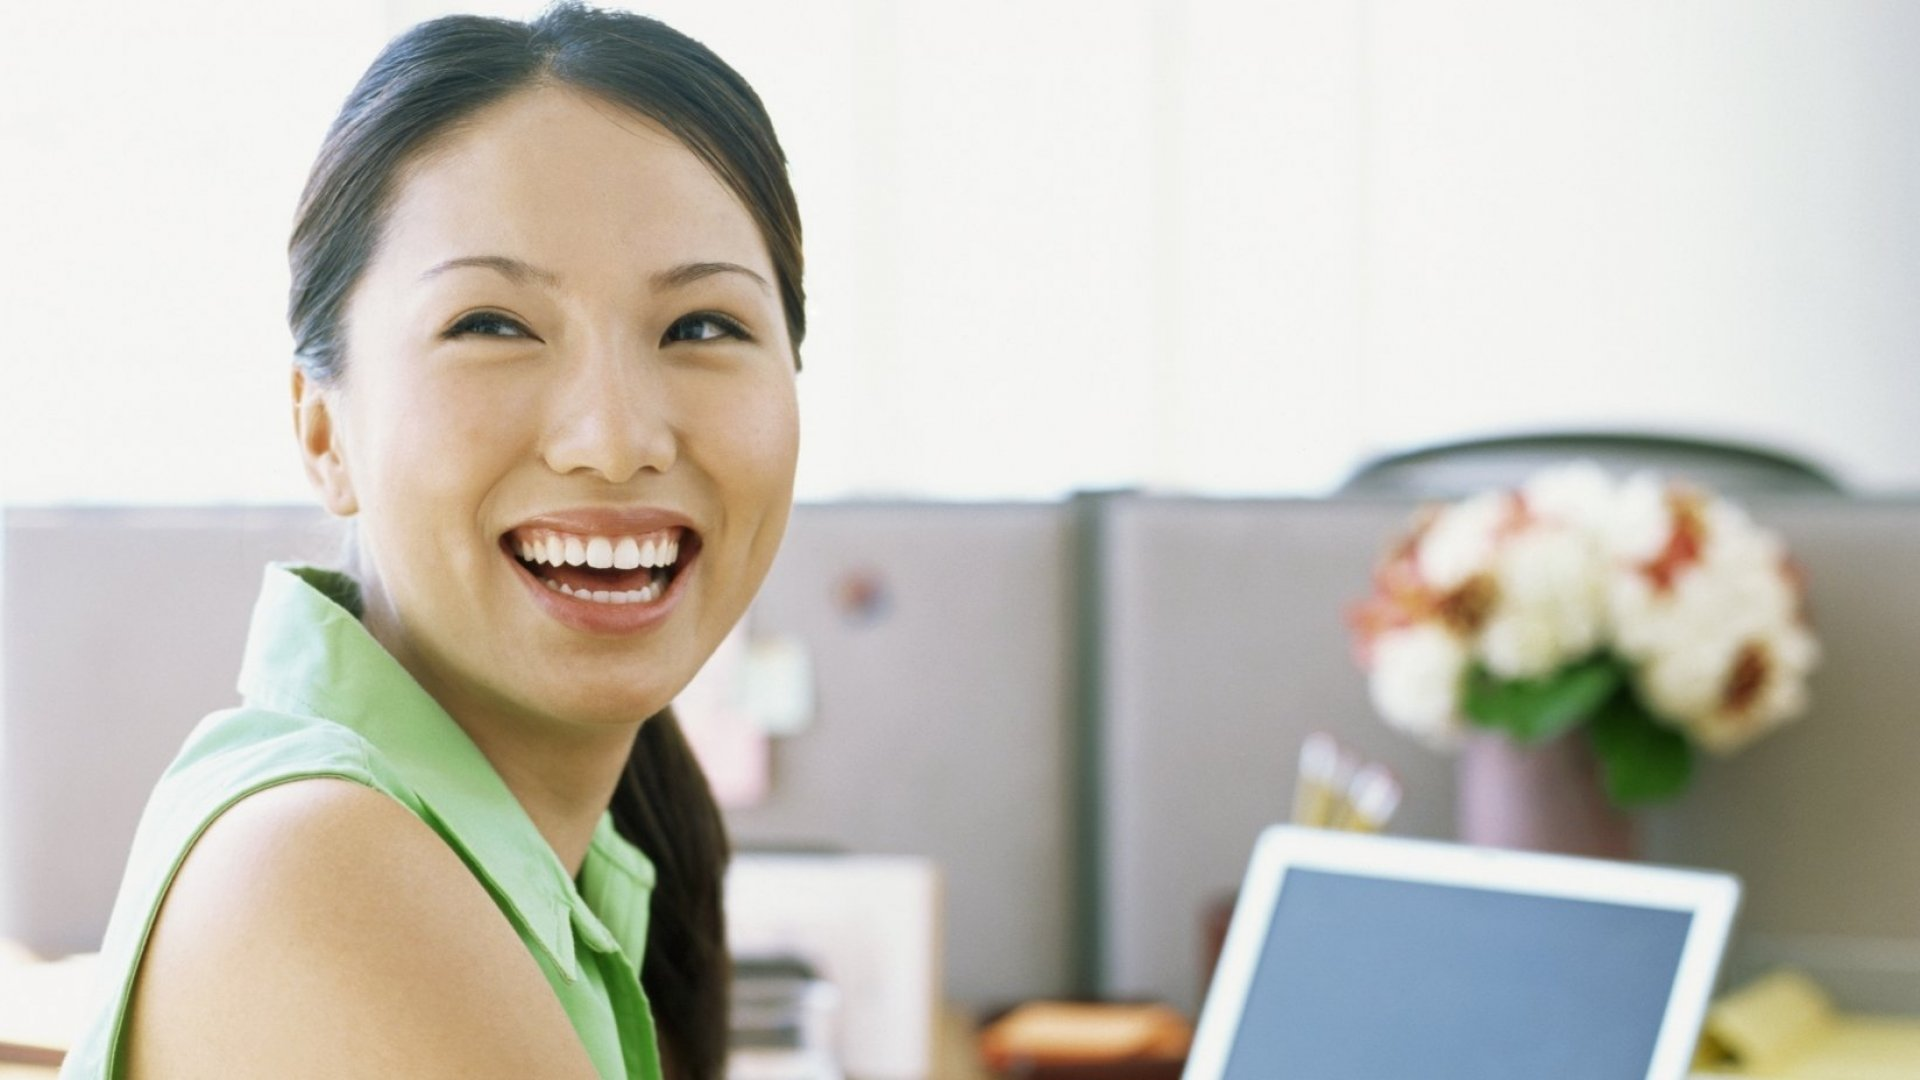 5 Ways to Immediately Maximize Happiness and Productivity in a Cubicle